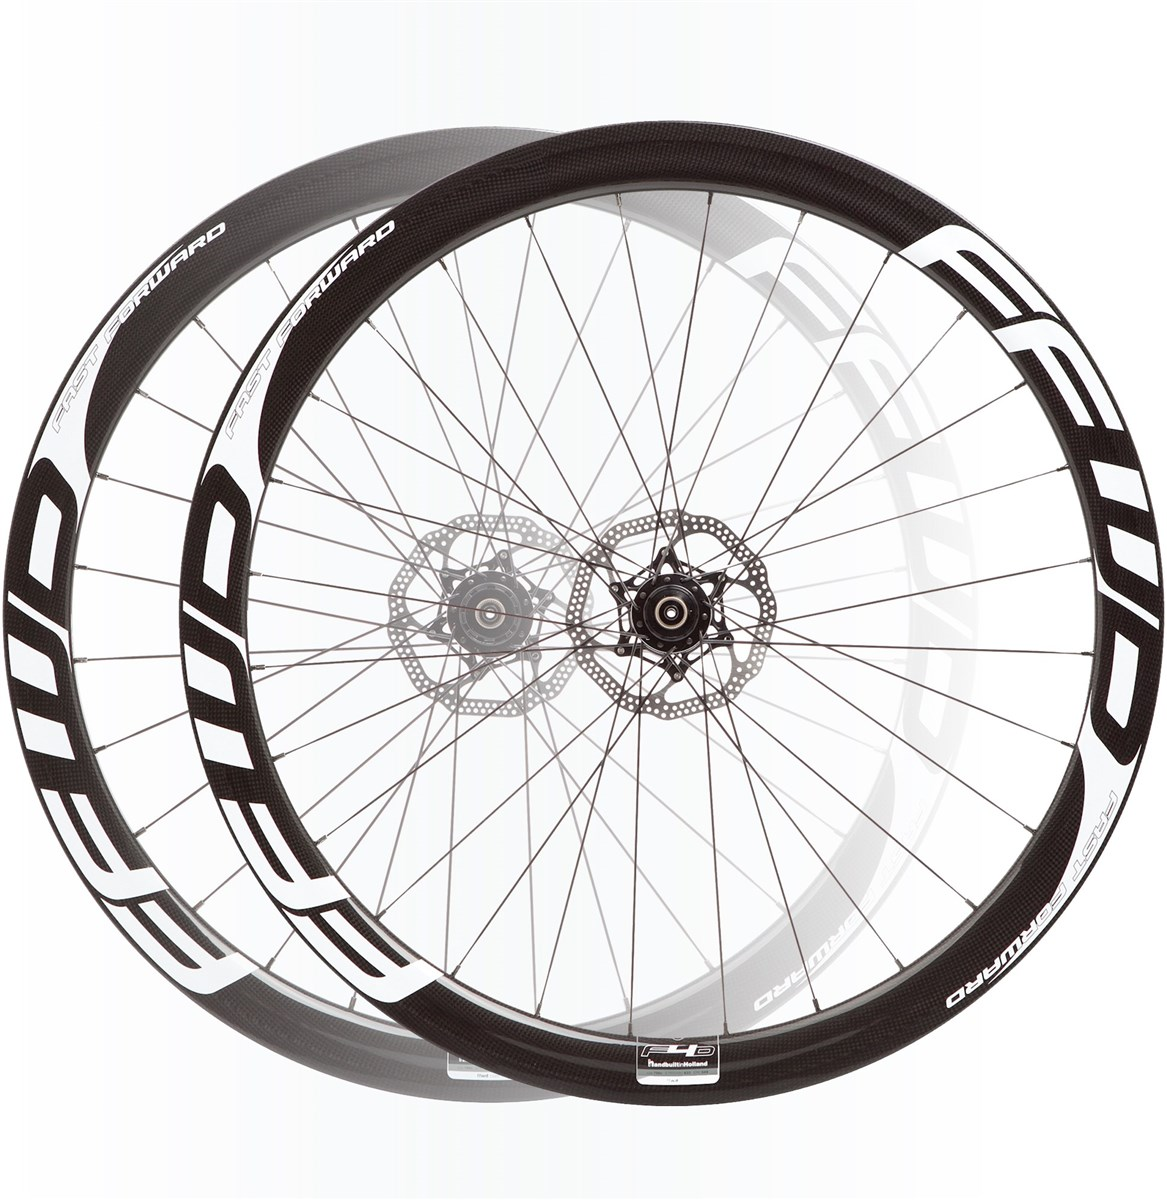 Fast Forward F4D Full Carbon Clincher Road Wheelset